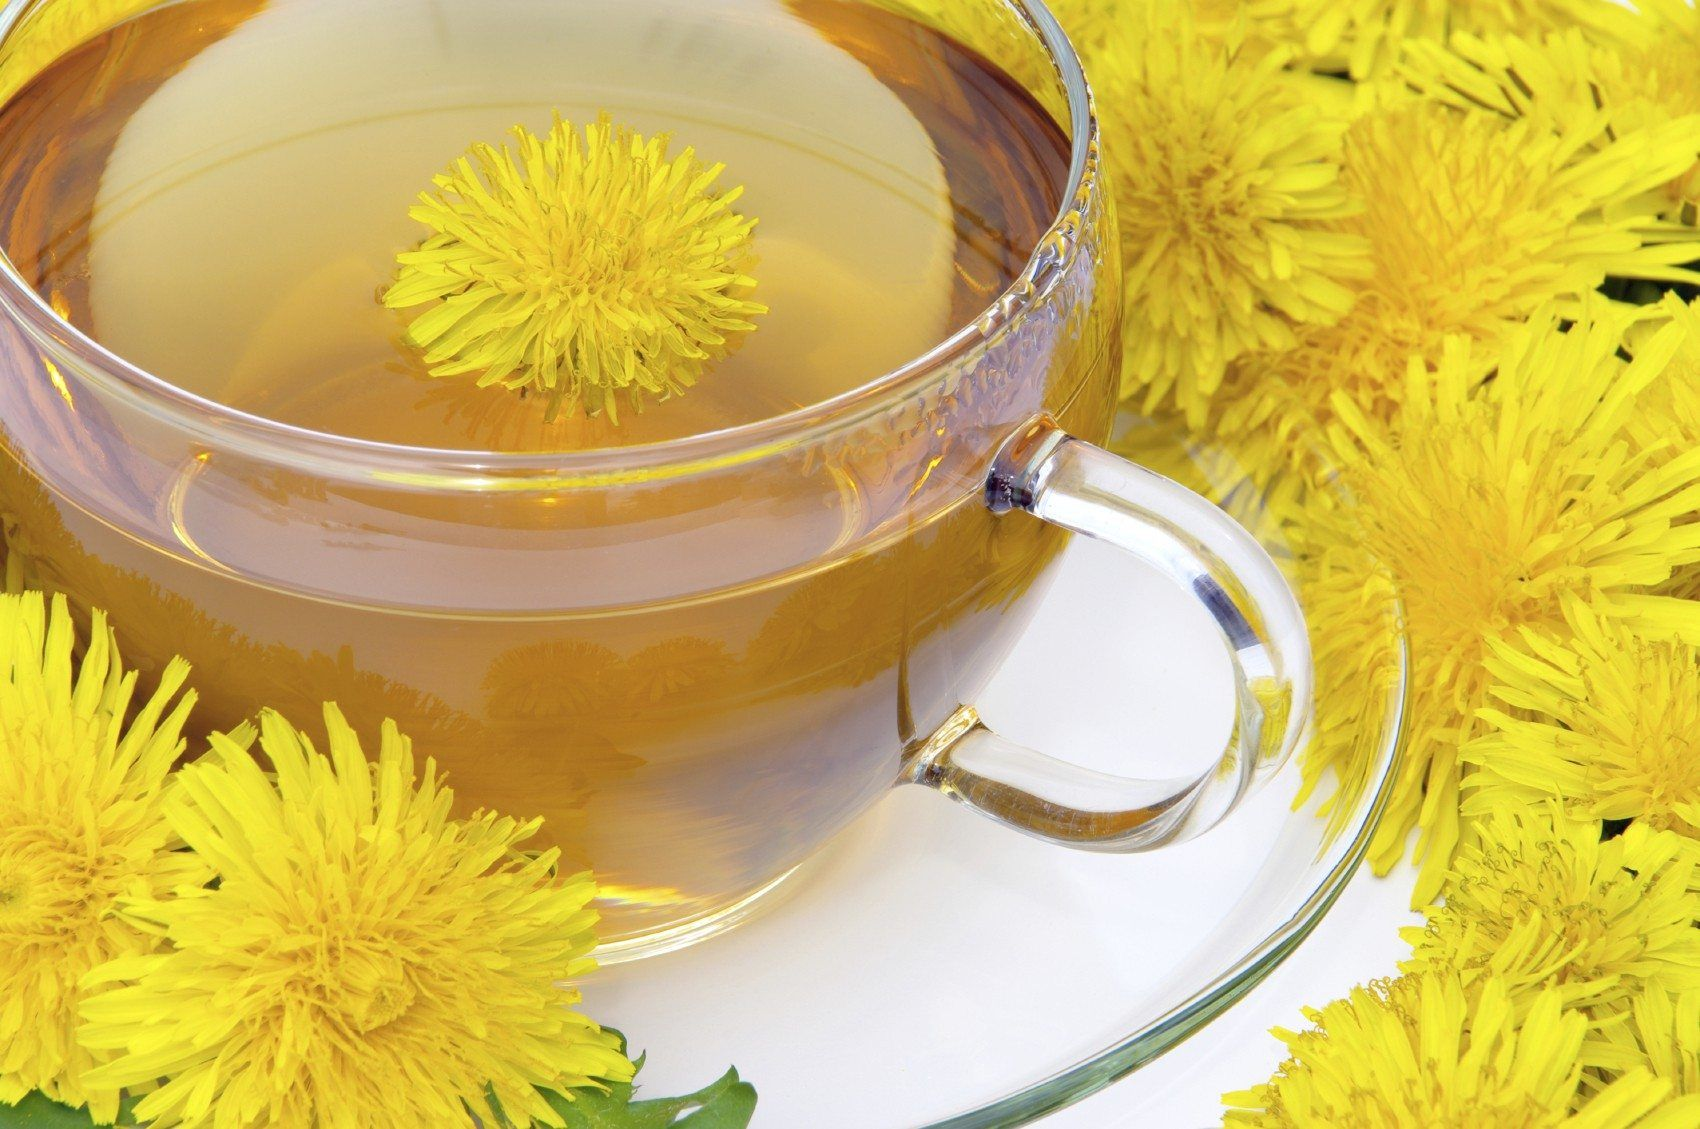 Making Dandelion Fertilizer Tea Tips On Using Dandelions As Fertilizer Dandelion Tea Benefits Dandelion Tea Dandelion Root Tea